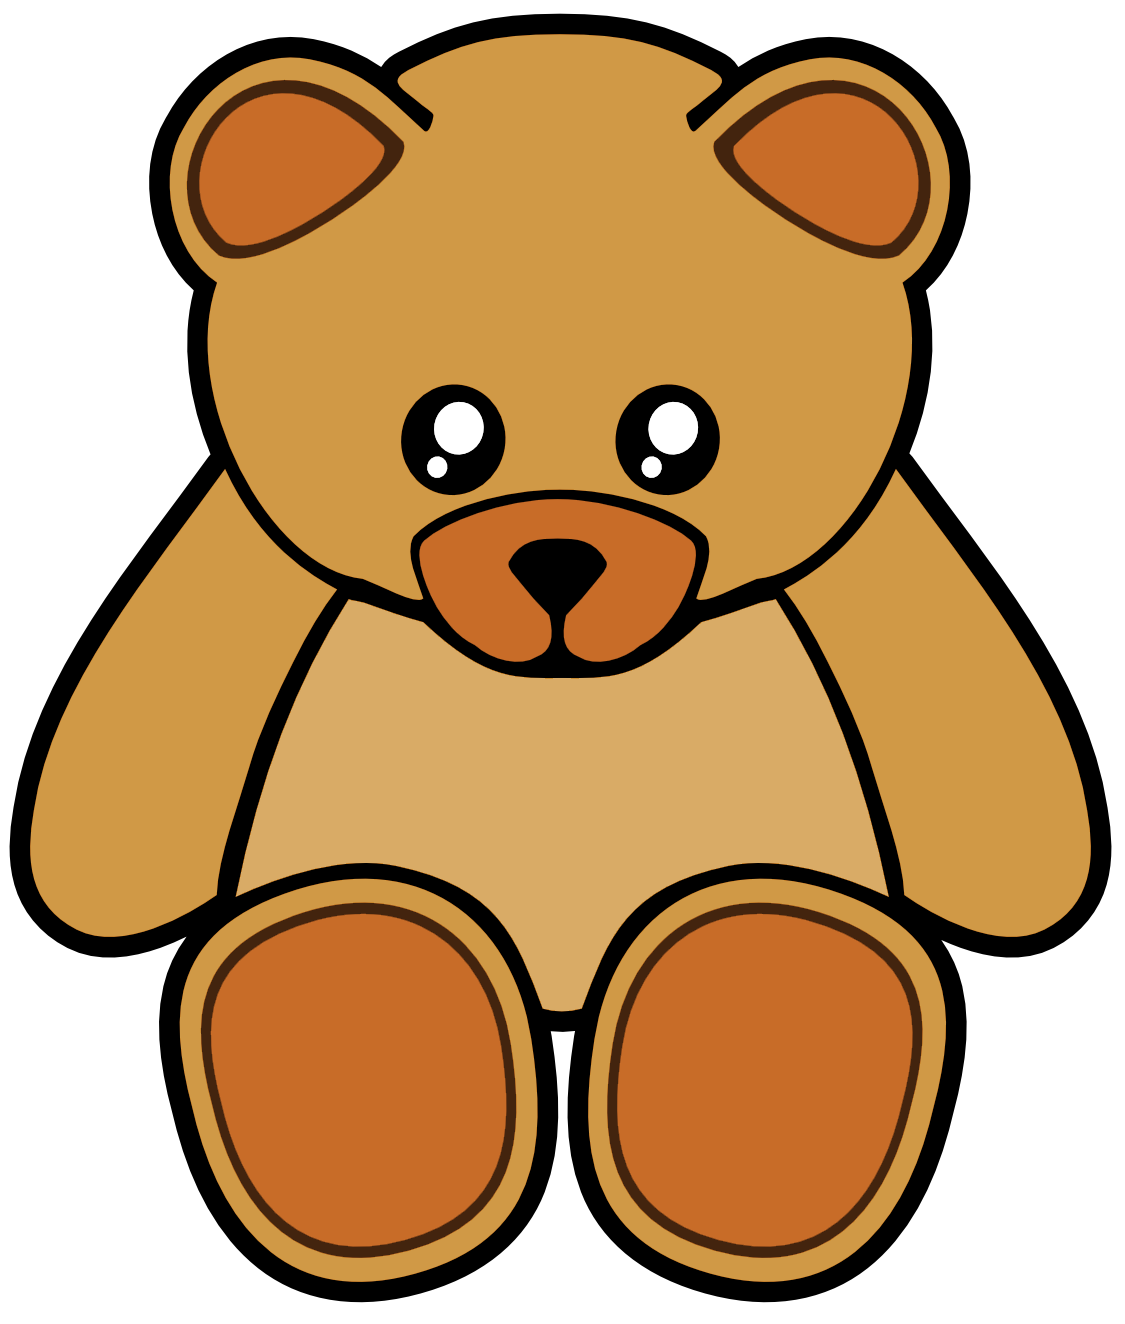 1125x1324 Teddy Bear Cute Bear Teddy Clip Art On Bears